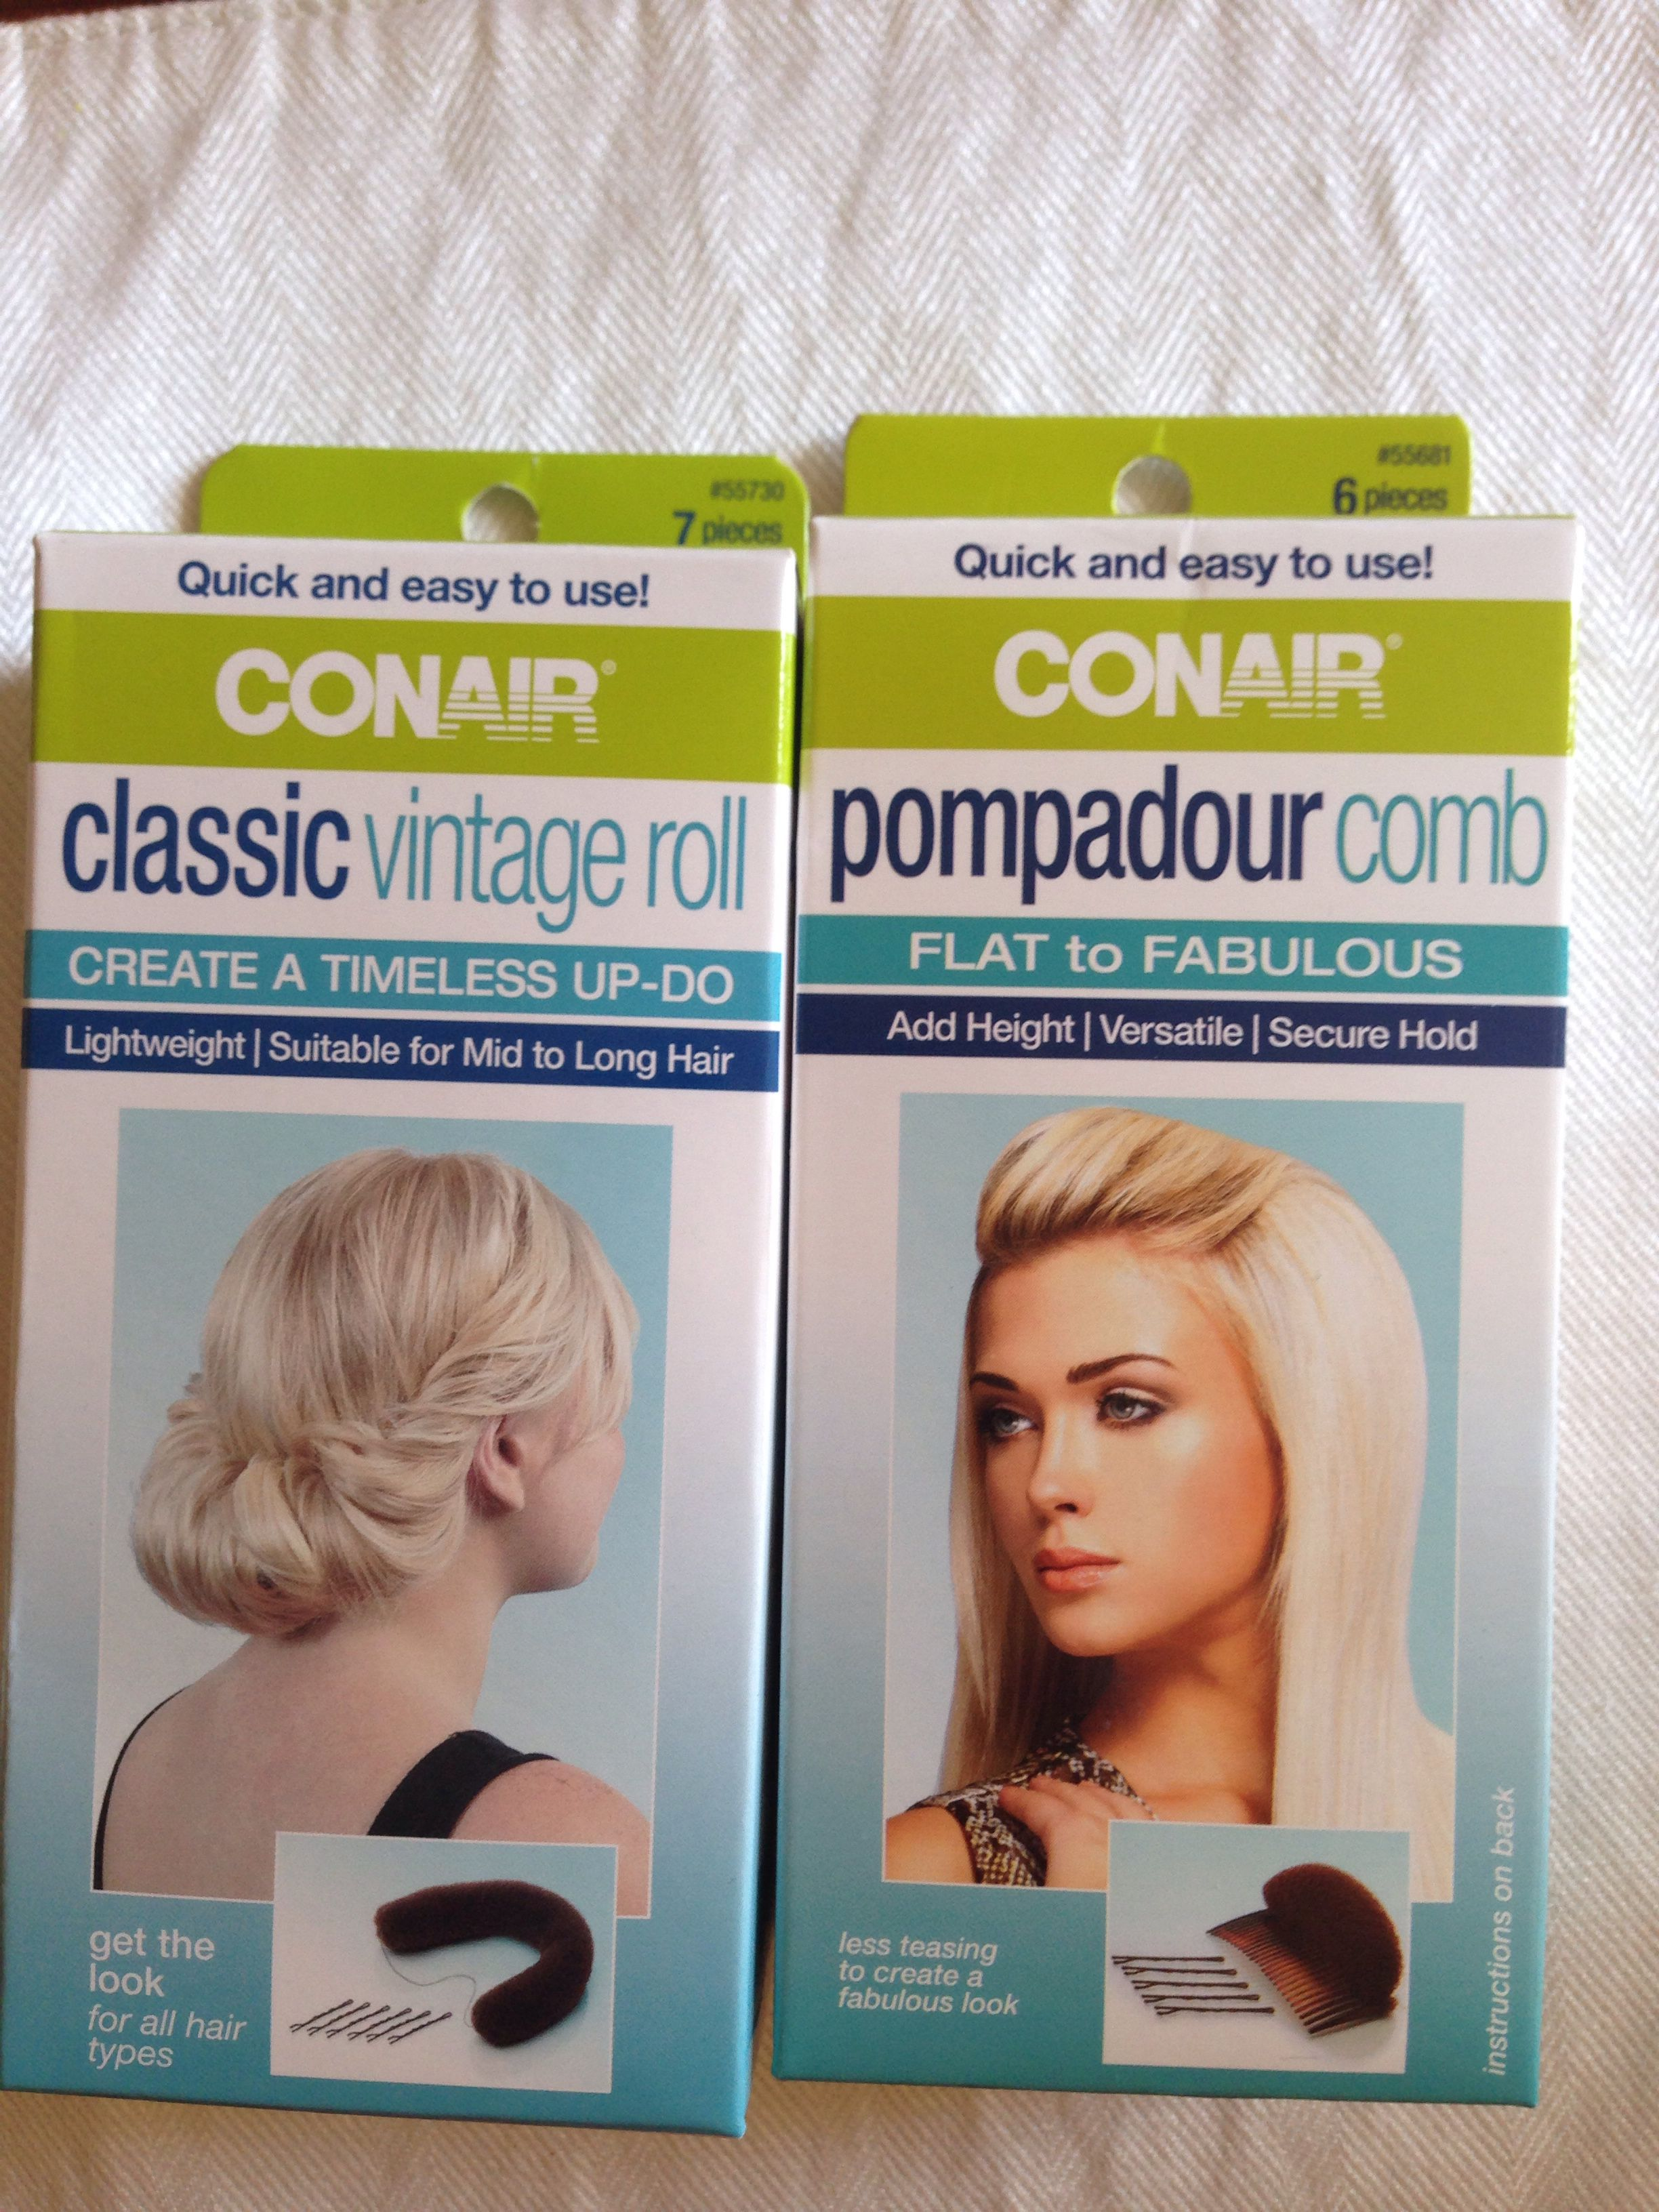 graphic relating to Conair Printable Coupons referred to as $2.99 conair hair at Walgreens $5.99 BOGO ultimate expense $2.99